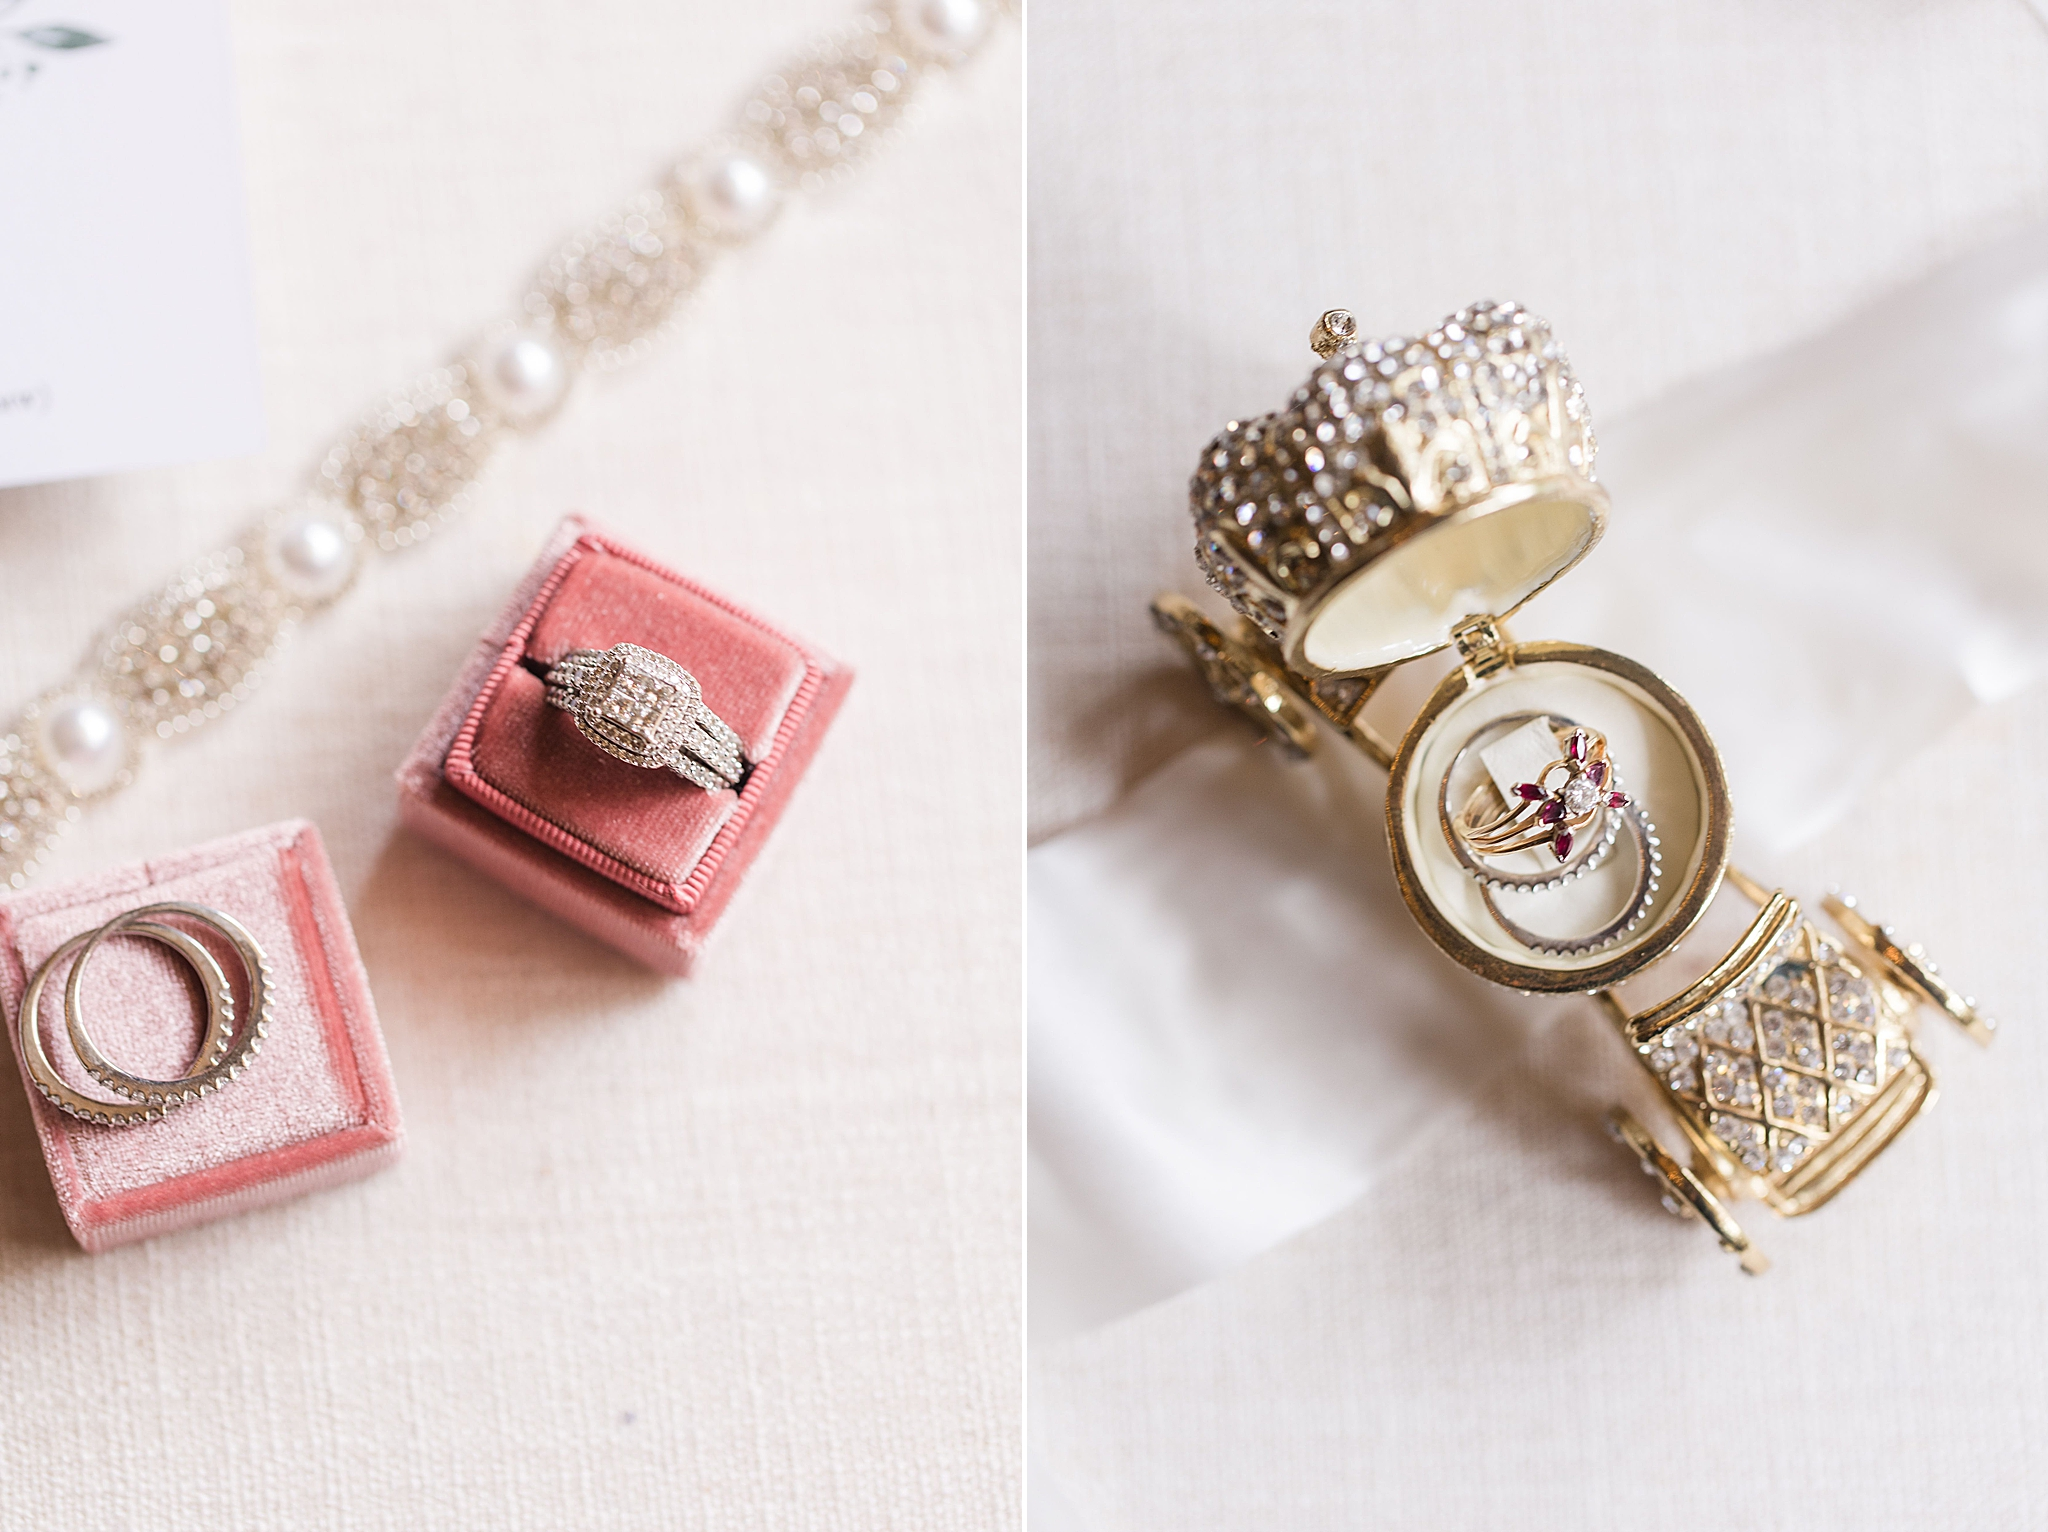 family heirloom rings rest with bride's rings on pink ring box